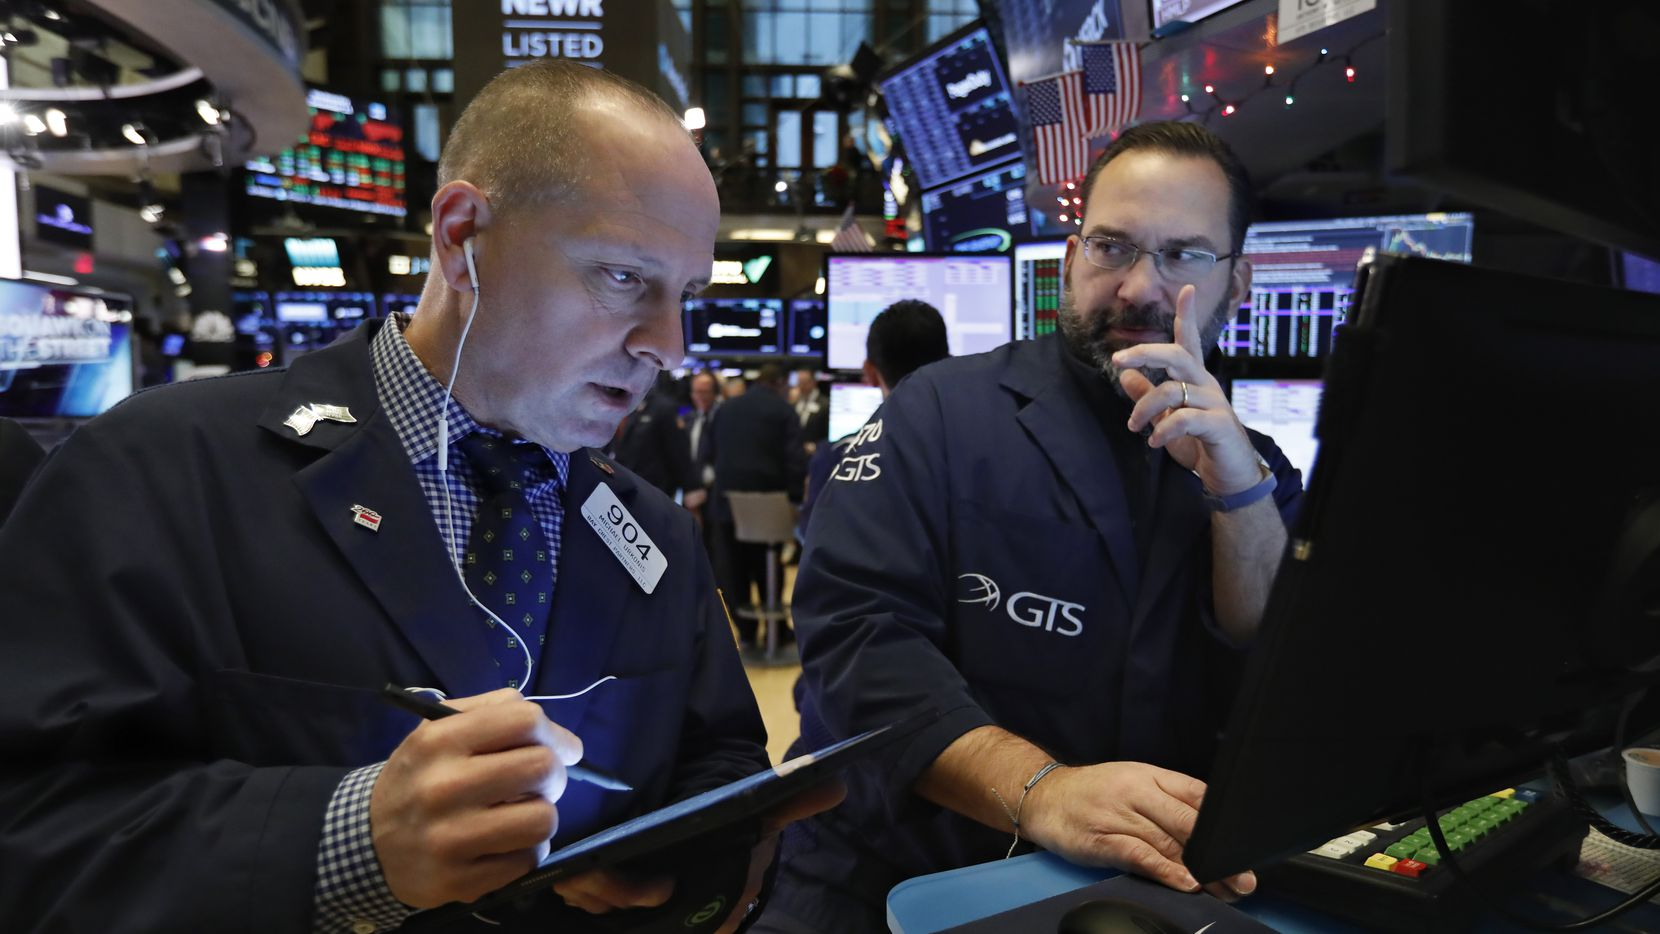 In this Dec. 11, 2019, file photo, trader Michael Urkonis, left, and specialist Anthony Matesic work on the floor of the New York Stock Exchange.